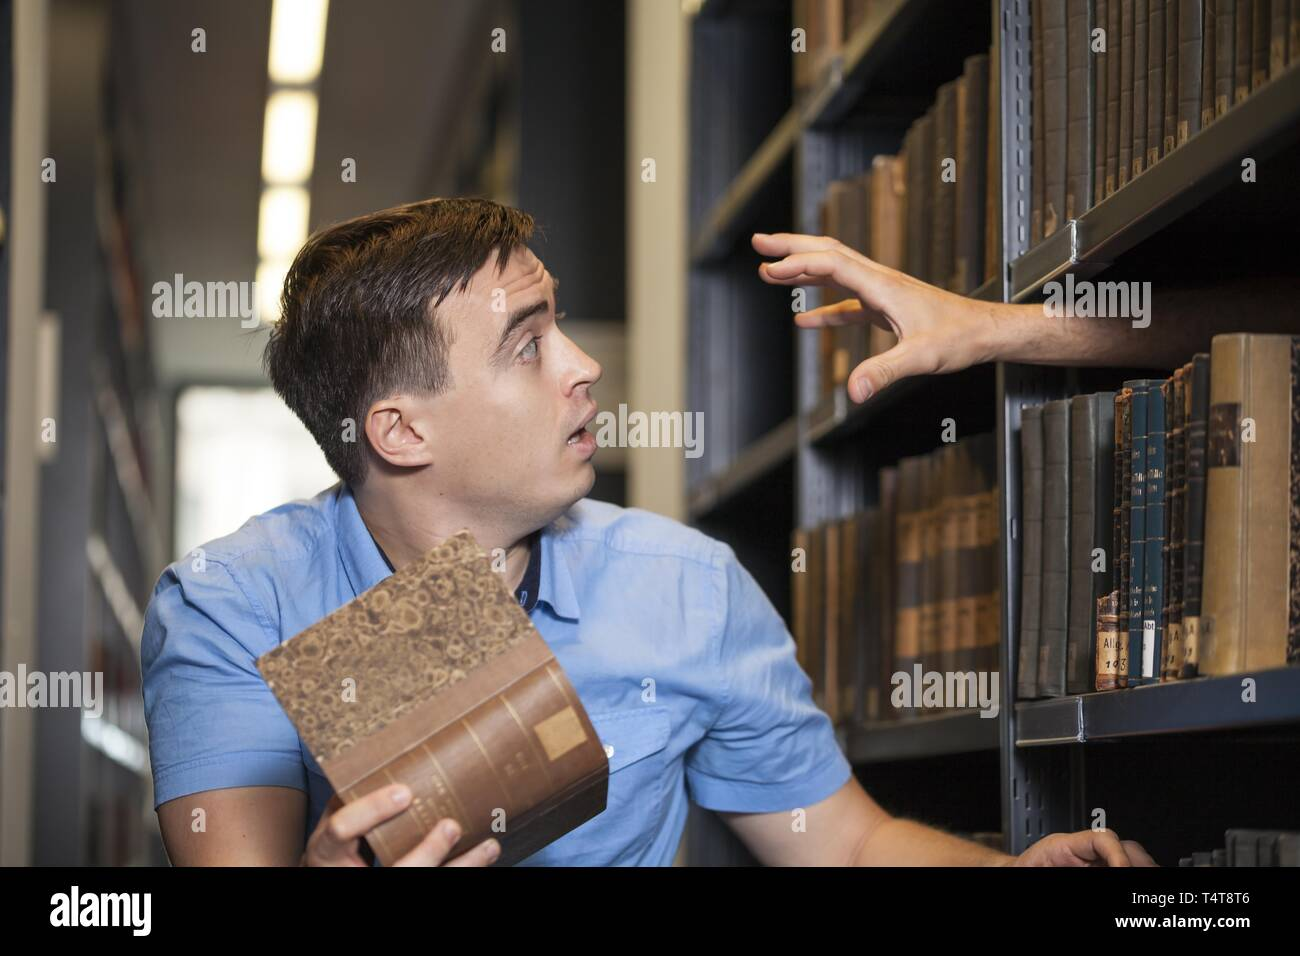 Student will be frightened in a library - Stock Image